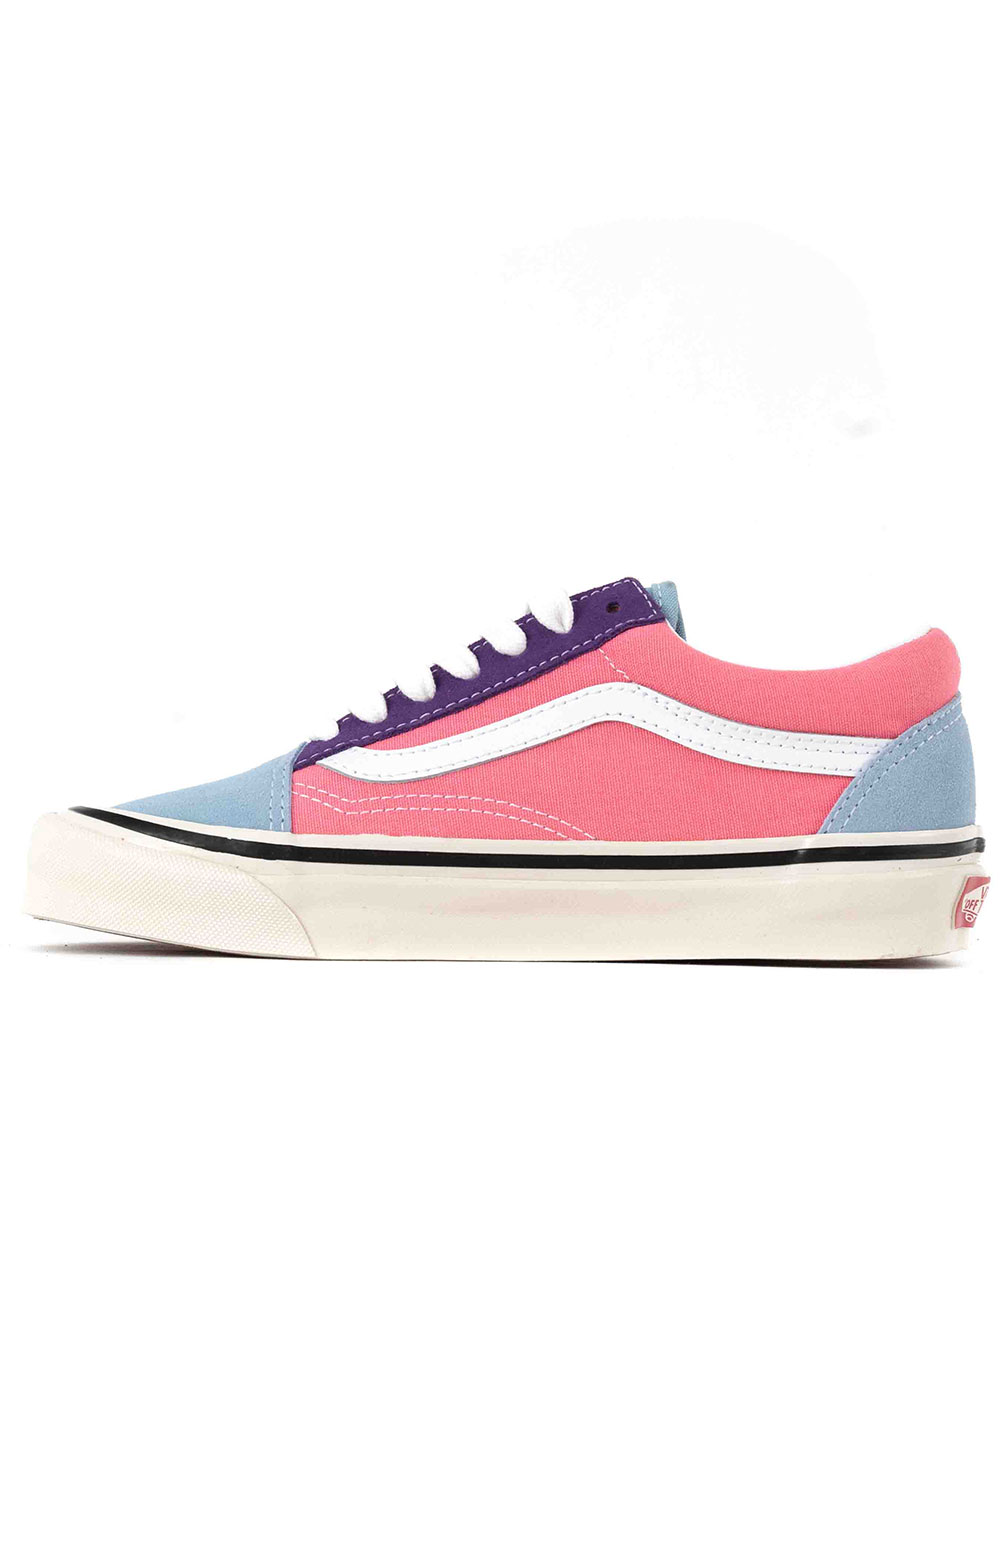 (8G2XFL) Anaheim Factory Old Skool 36 DX Shoes - OG Light Blue/OG Purple/OG Pink 4